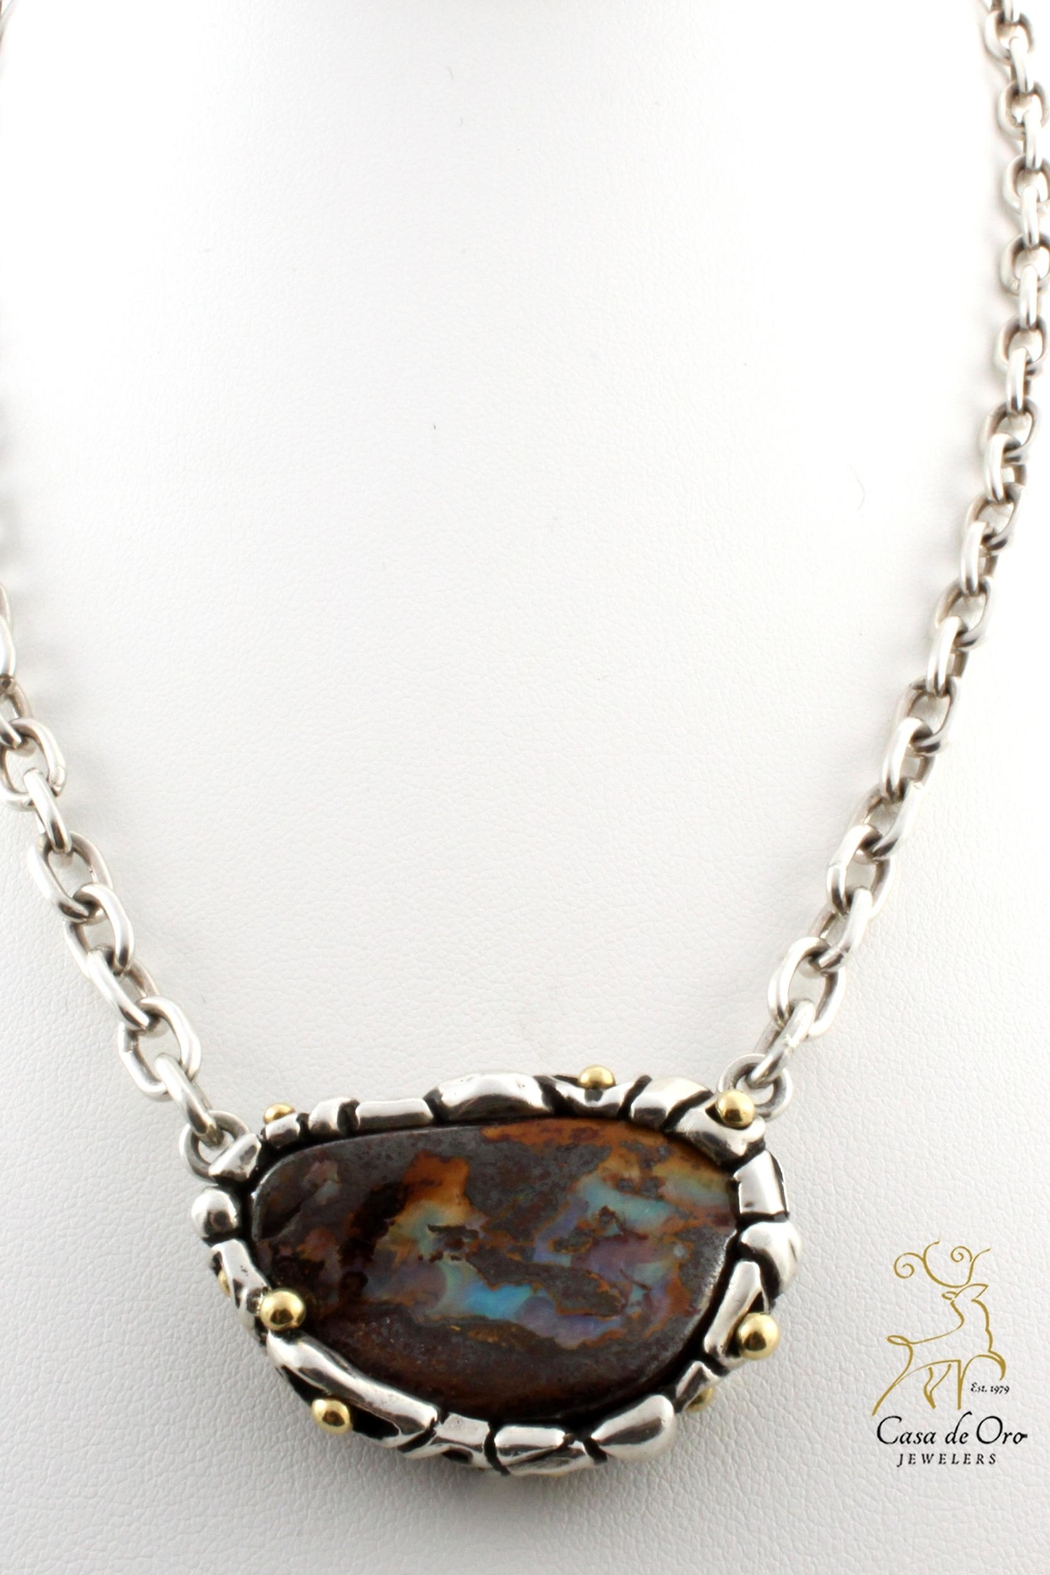 flashopal pendant sale g gold yellow boulder opal jewelry handmade